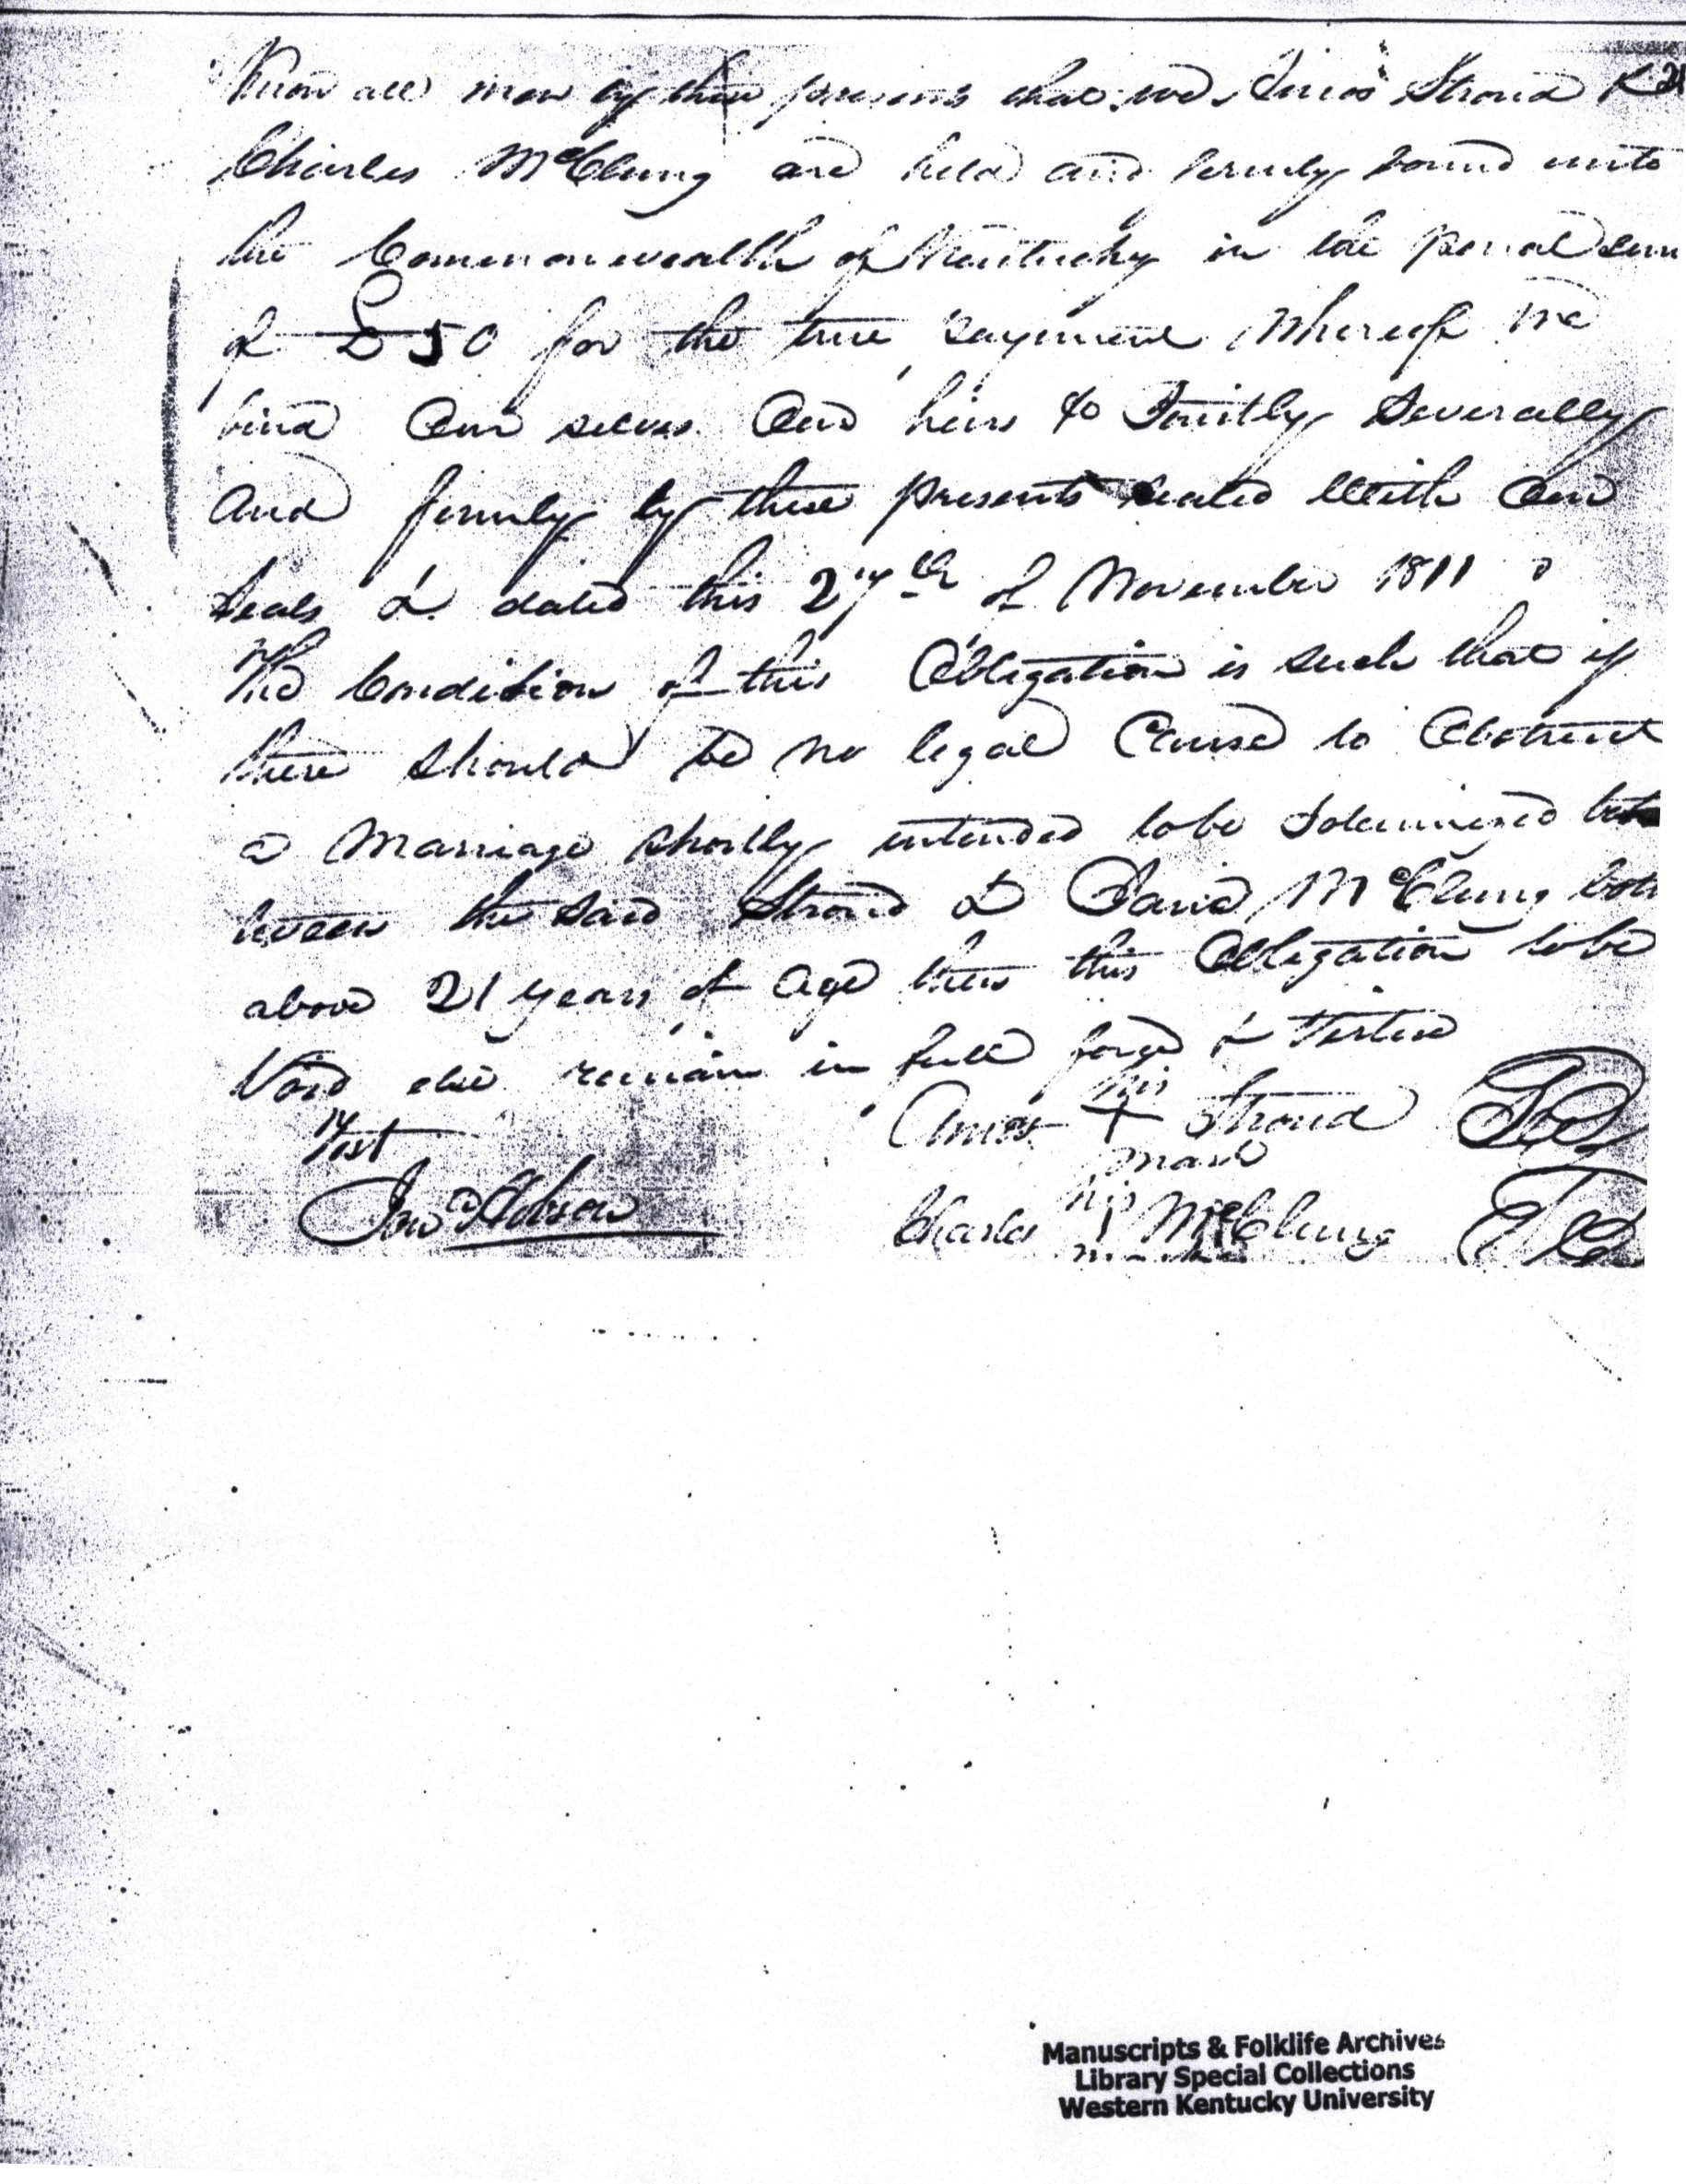 Image:Marriage Bond Amos Strode and Jane McClung Warren County Kentucky 1811.jpg